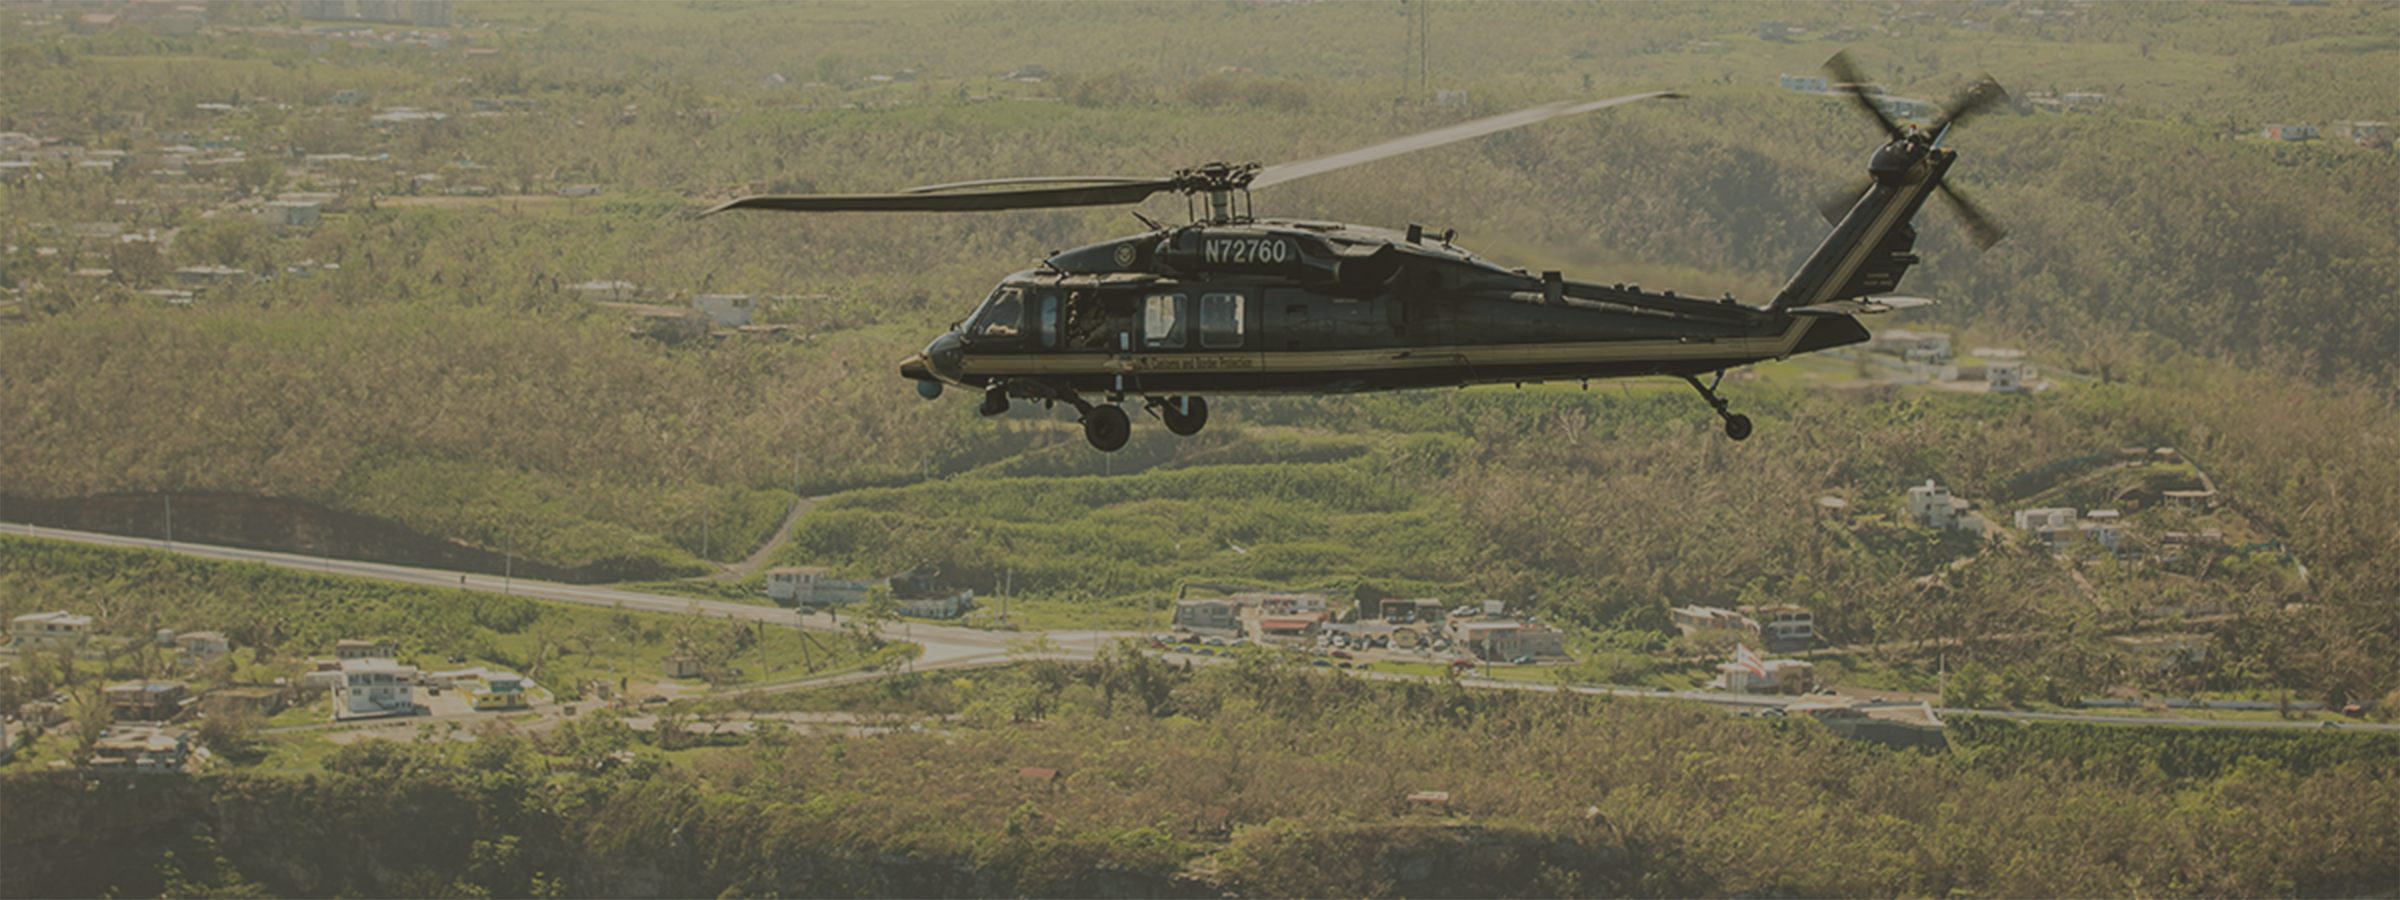 An Air and Marine Operations UH-60 crew surveys damage in Puerto Rico following Hurricane Maria.